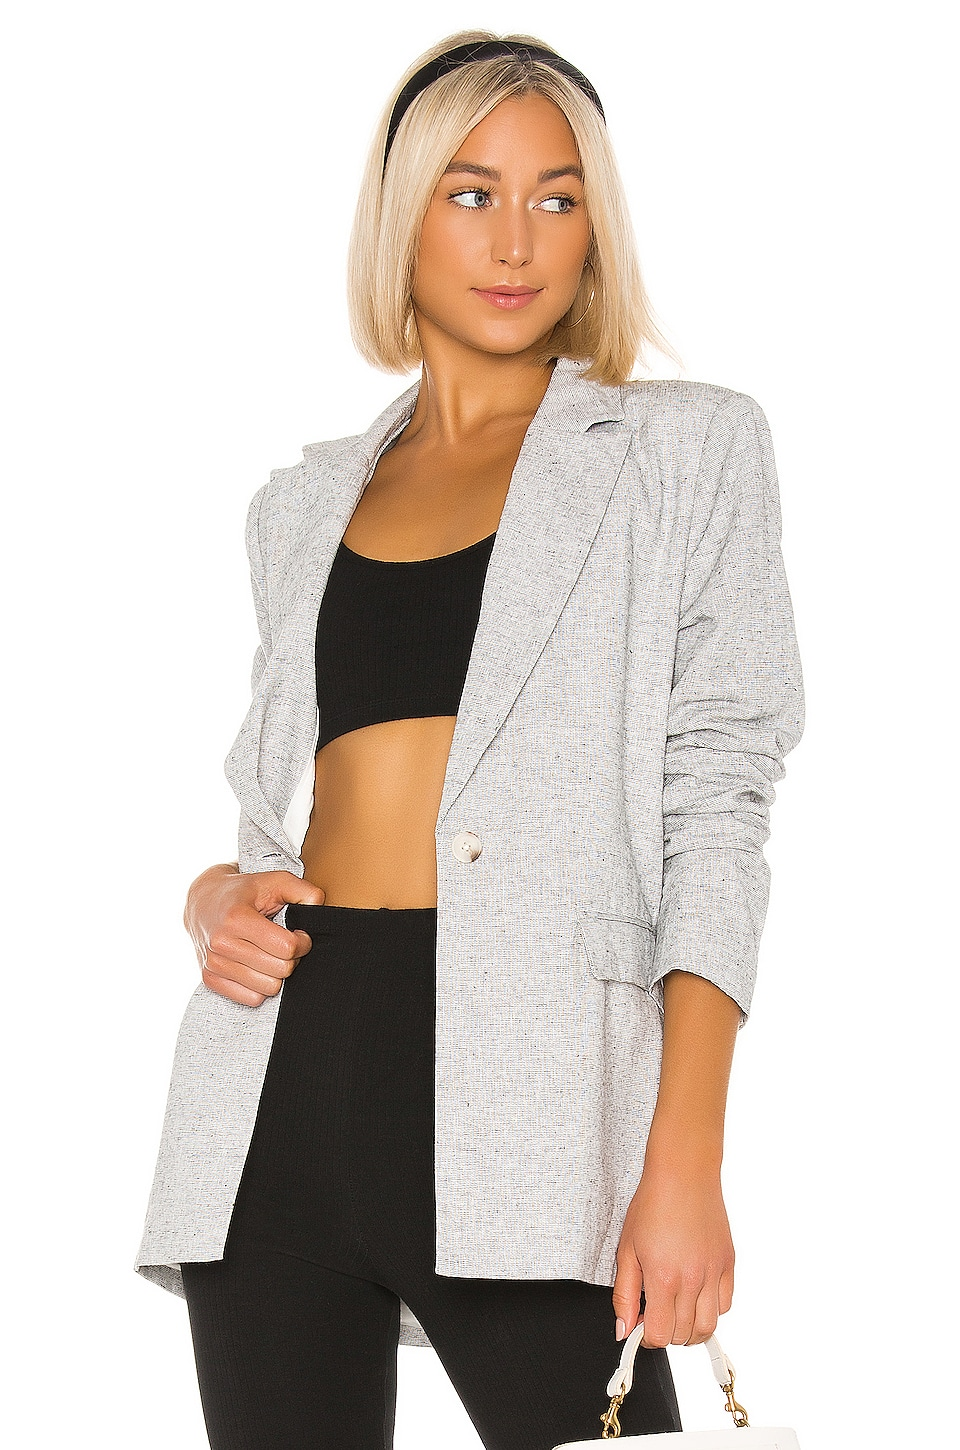 L'Academie The Jeanette Blazer in Black & White